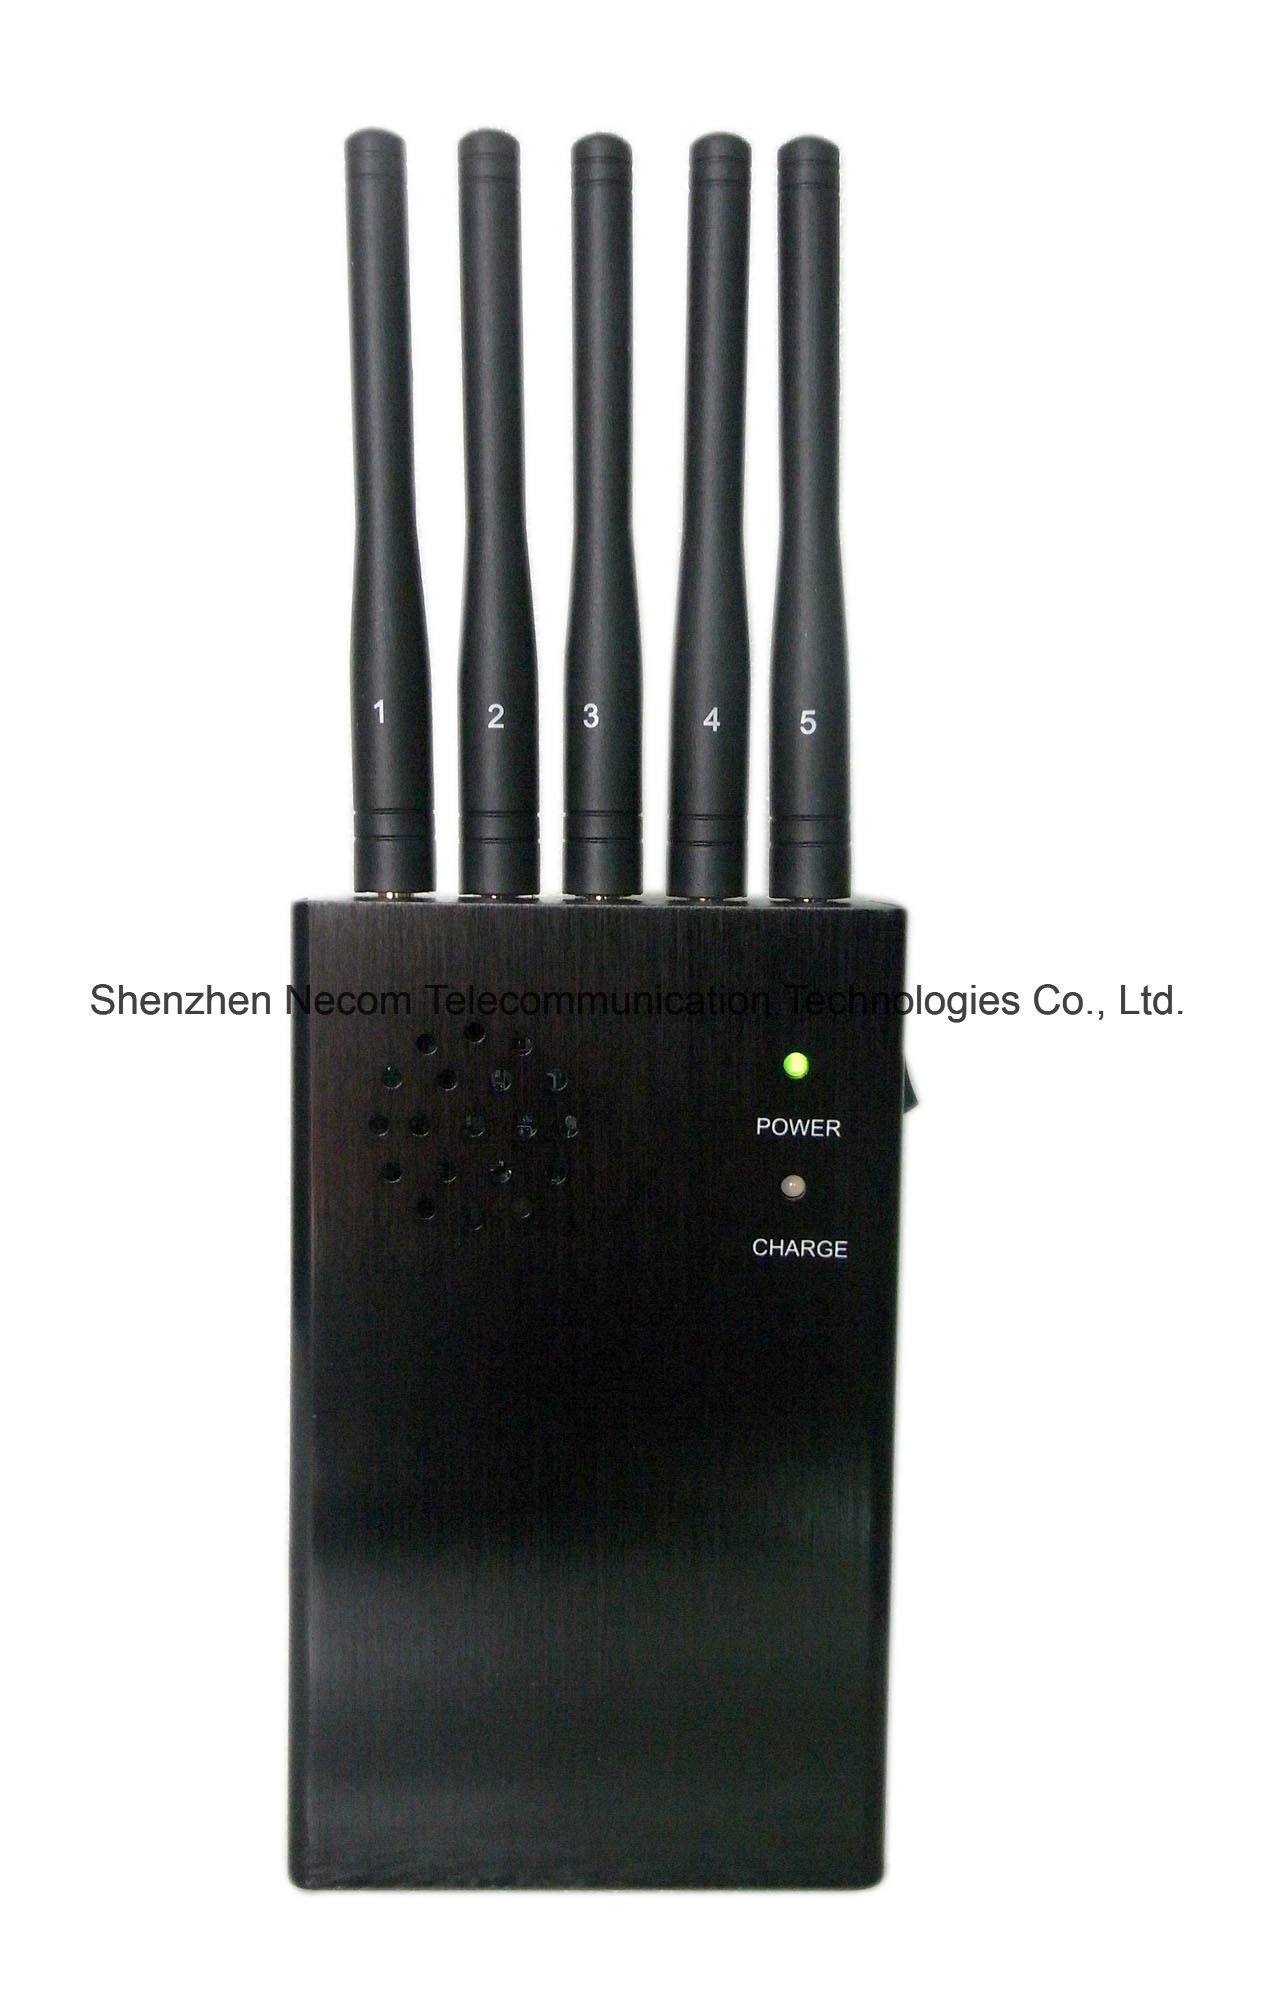 wireless phone jammer sale - China GPS and Cell Phone Signal Jammer with Car Charger,Portable 6 Bands Blocker for 3G/4G Cellular Phone,WiFi,GPS,Lojack,Portable GPS Mobile Jammer with Car Charger - China 5 Band Signal Blockers, Five Antennas Jammers